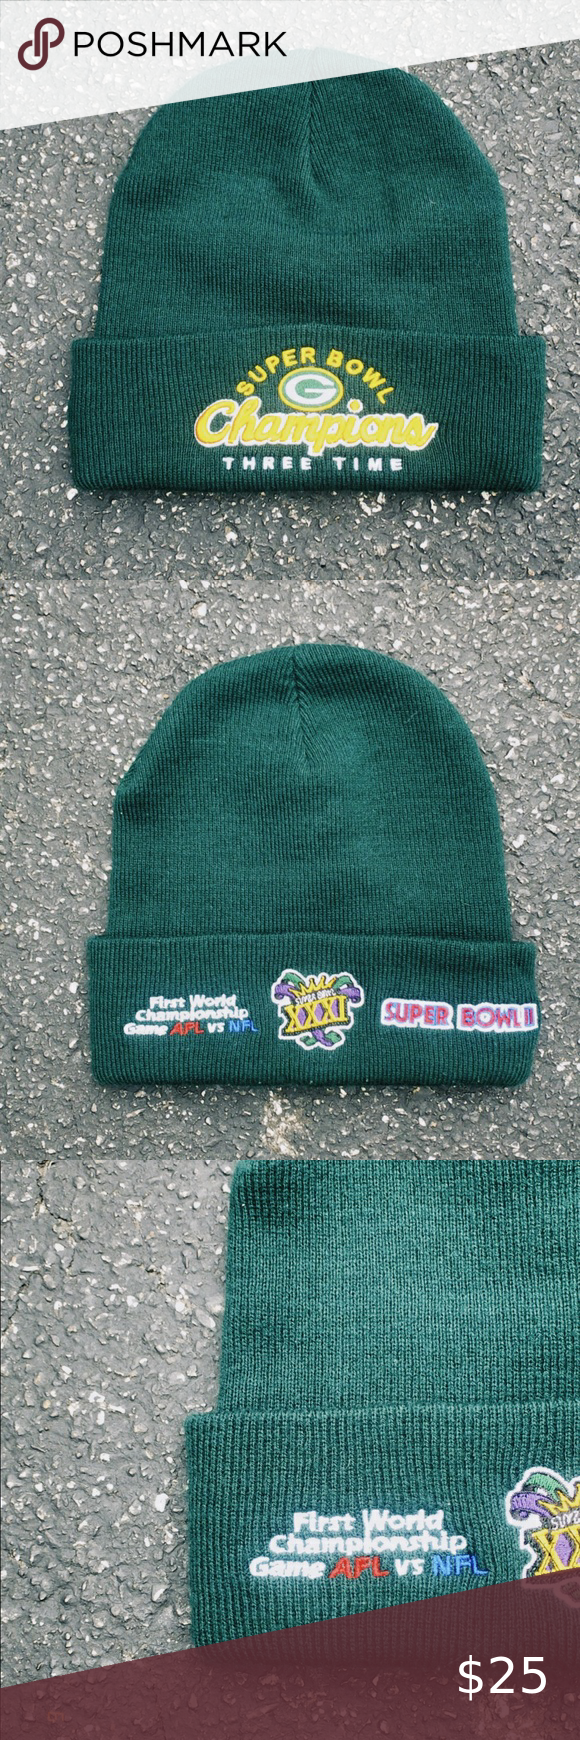 Vintage 90s Embroidered Green Bay Packers Beanie In 2020 Embroidered Nfl Accessories Beanie